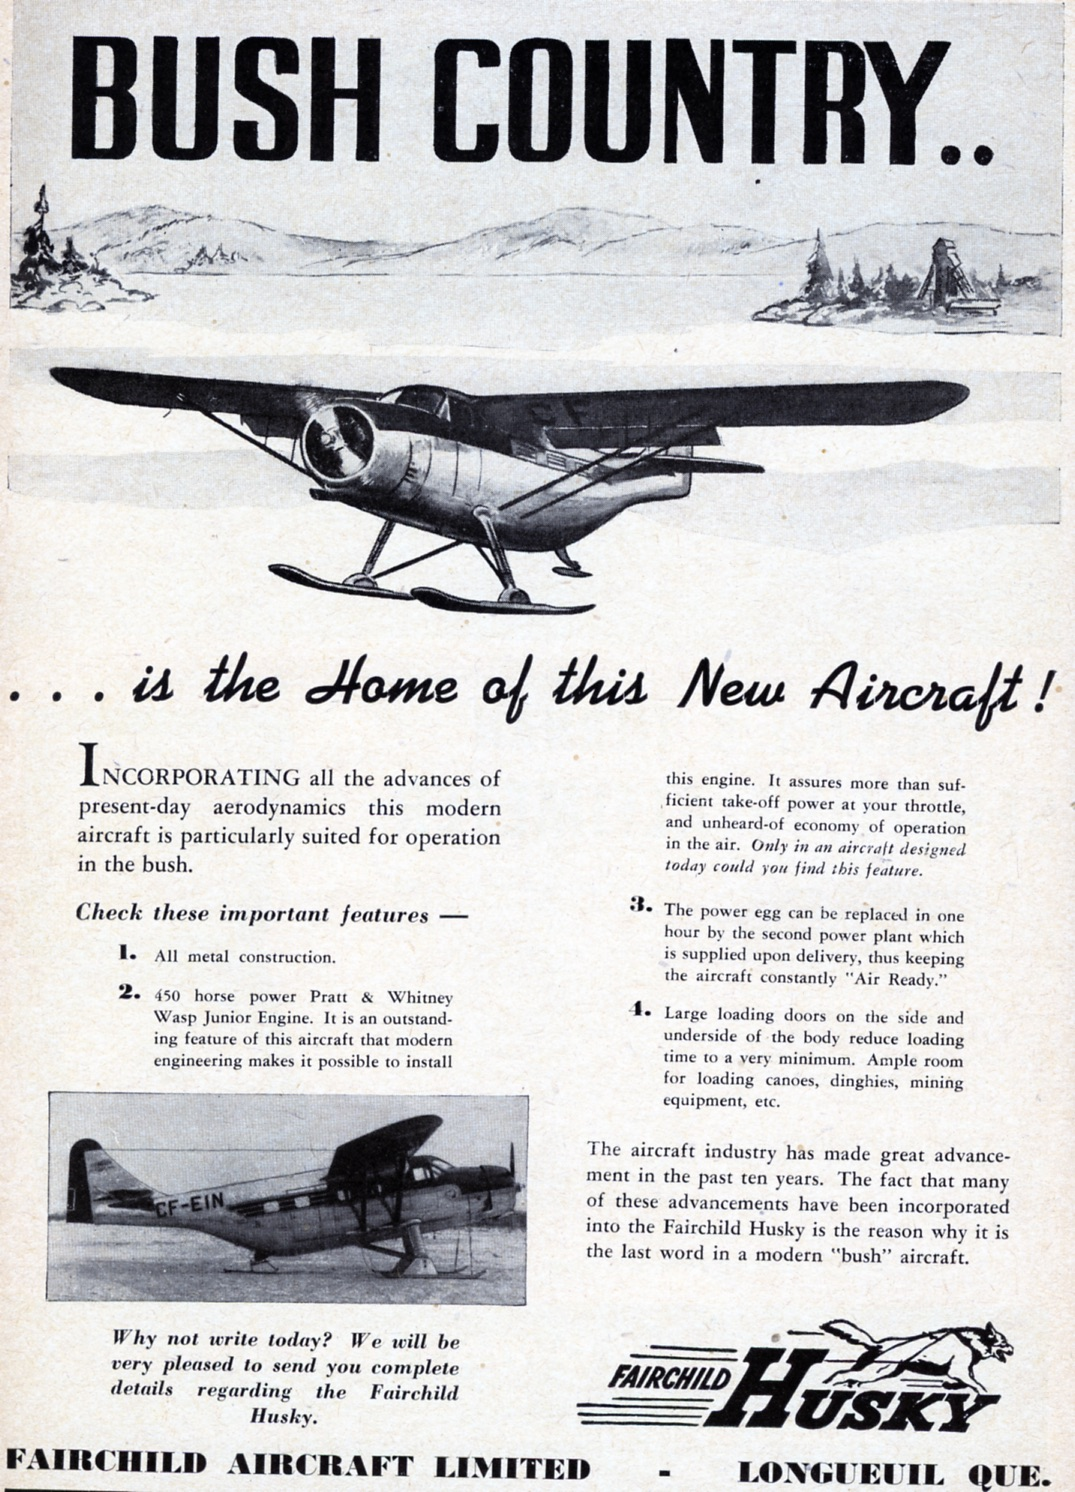 "A great new postwar Canadian idea was the Husky, designed at war's end by Fairchild of Canada at Longueuil, Quebec. Fairchild's thinking also was, ""Hey … the war's over, all the bush operators are going to be scrambling to re-equip."" Fairchild, however, learned the same lesson as Noorduyn. Even before the war, few bush operators ever had money for a new plane. They just kept patching up their old crates. On top of this, at the same time, in 1947 De Havilland in Toronto was introducing the new Beaver, which swept the market , forcing Fairchild to close its doors. Notice the basic means of communications mentioned in such ads. In this case not even a phone number, just a straight forward ""Why not write today"", but they don't even give a PO box number! But everyone knew back then that the post office would get any letter through. Only a few Huskys were sold. Even so, they made their mark as one of Canada's great bushplanes, the final 2 or 3 lasting in service for more than 30 years. The Husky story is told best in Air Transport in Canada and A Life in Canadian Aerospace. Periodically, a rumour floats around that someone's planning a Husky revival, but we'll believe that one when we see it."